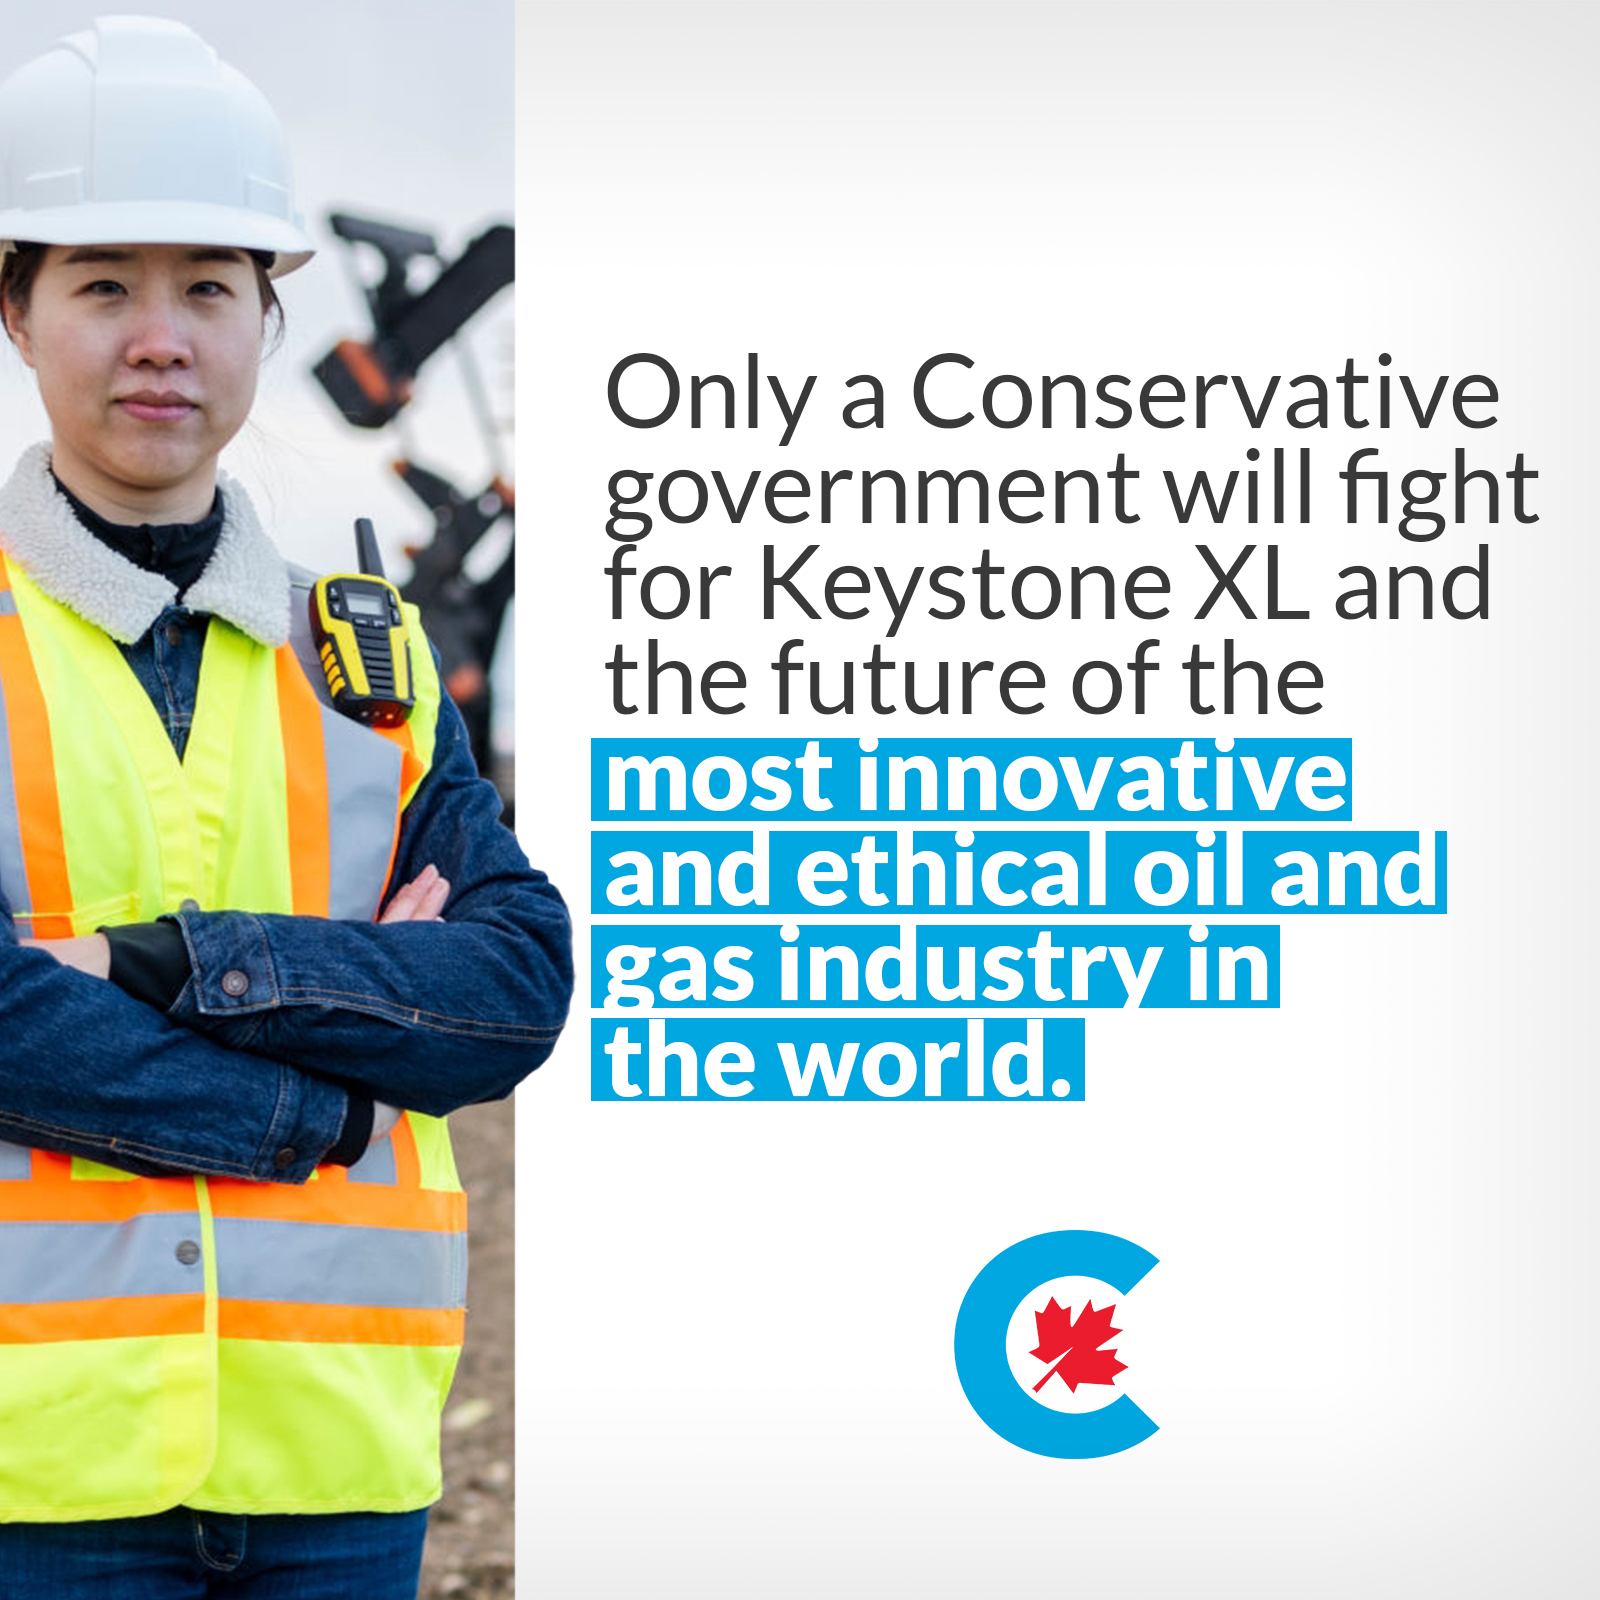 WARKENTIN CALLS ON TRUDEAU TO ADVOCATE FOR ALBERTA JOBS AND THE CONTINUED CONSTRUCTION OF THE KEYSTONE XL PIPELINE